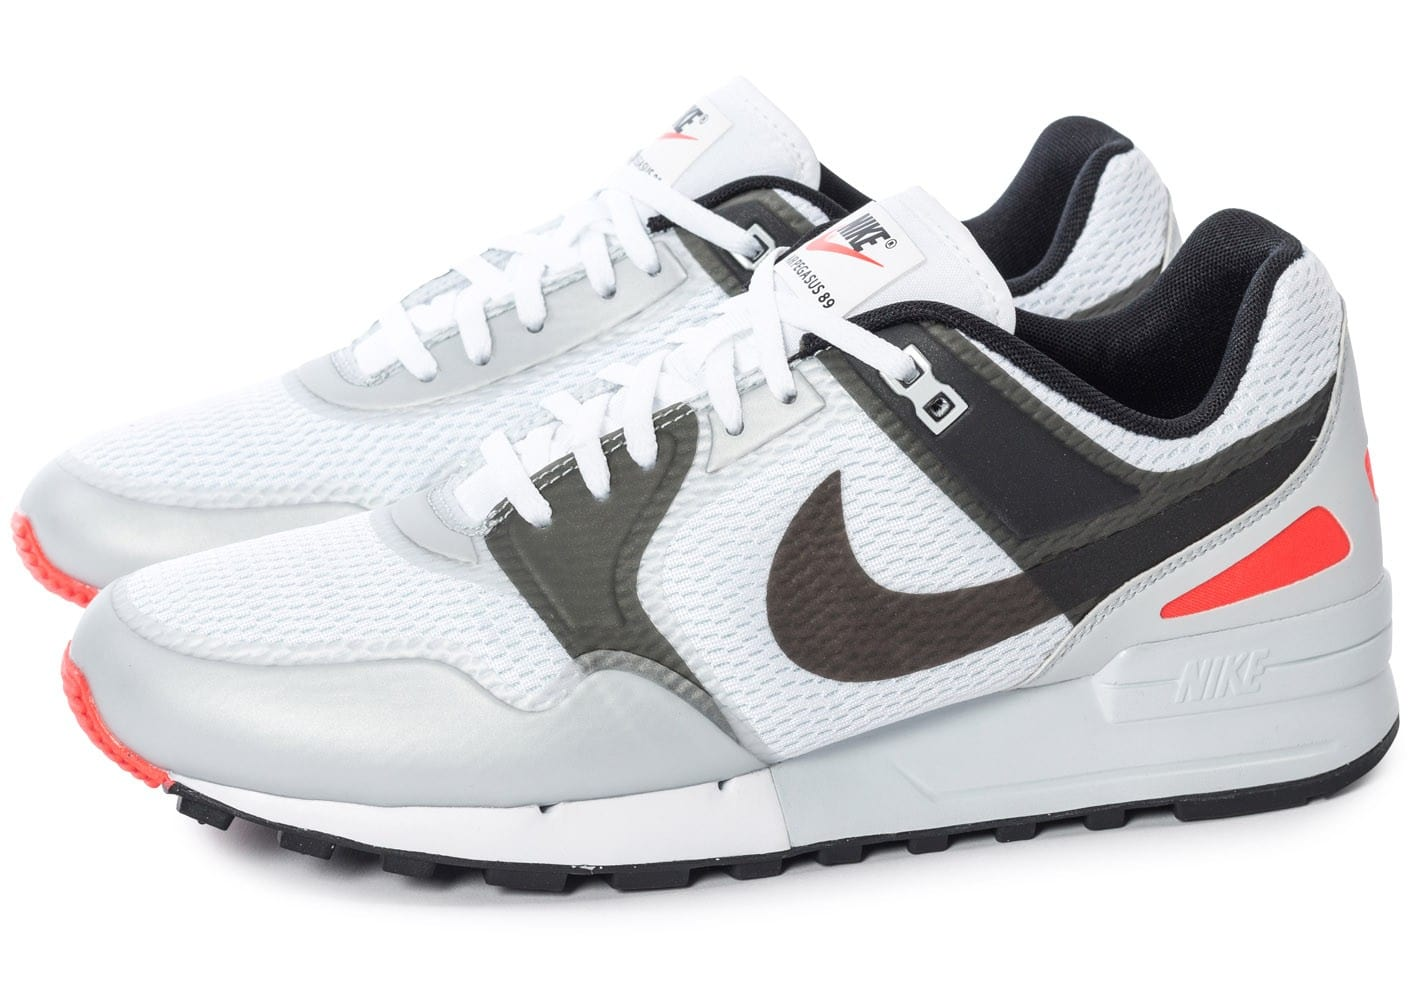 Chaussures Nike Air Pegasus blanches homme